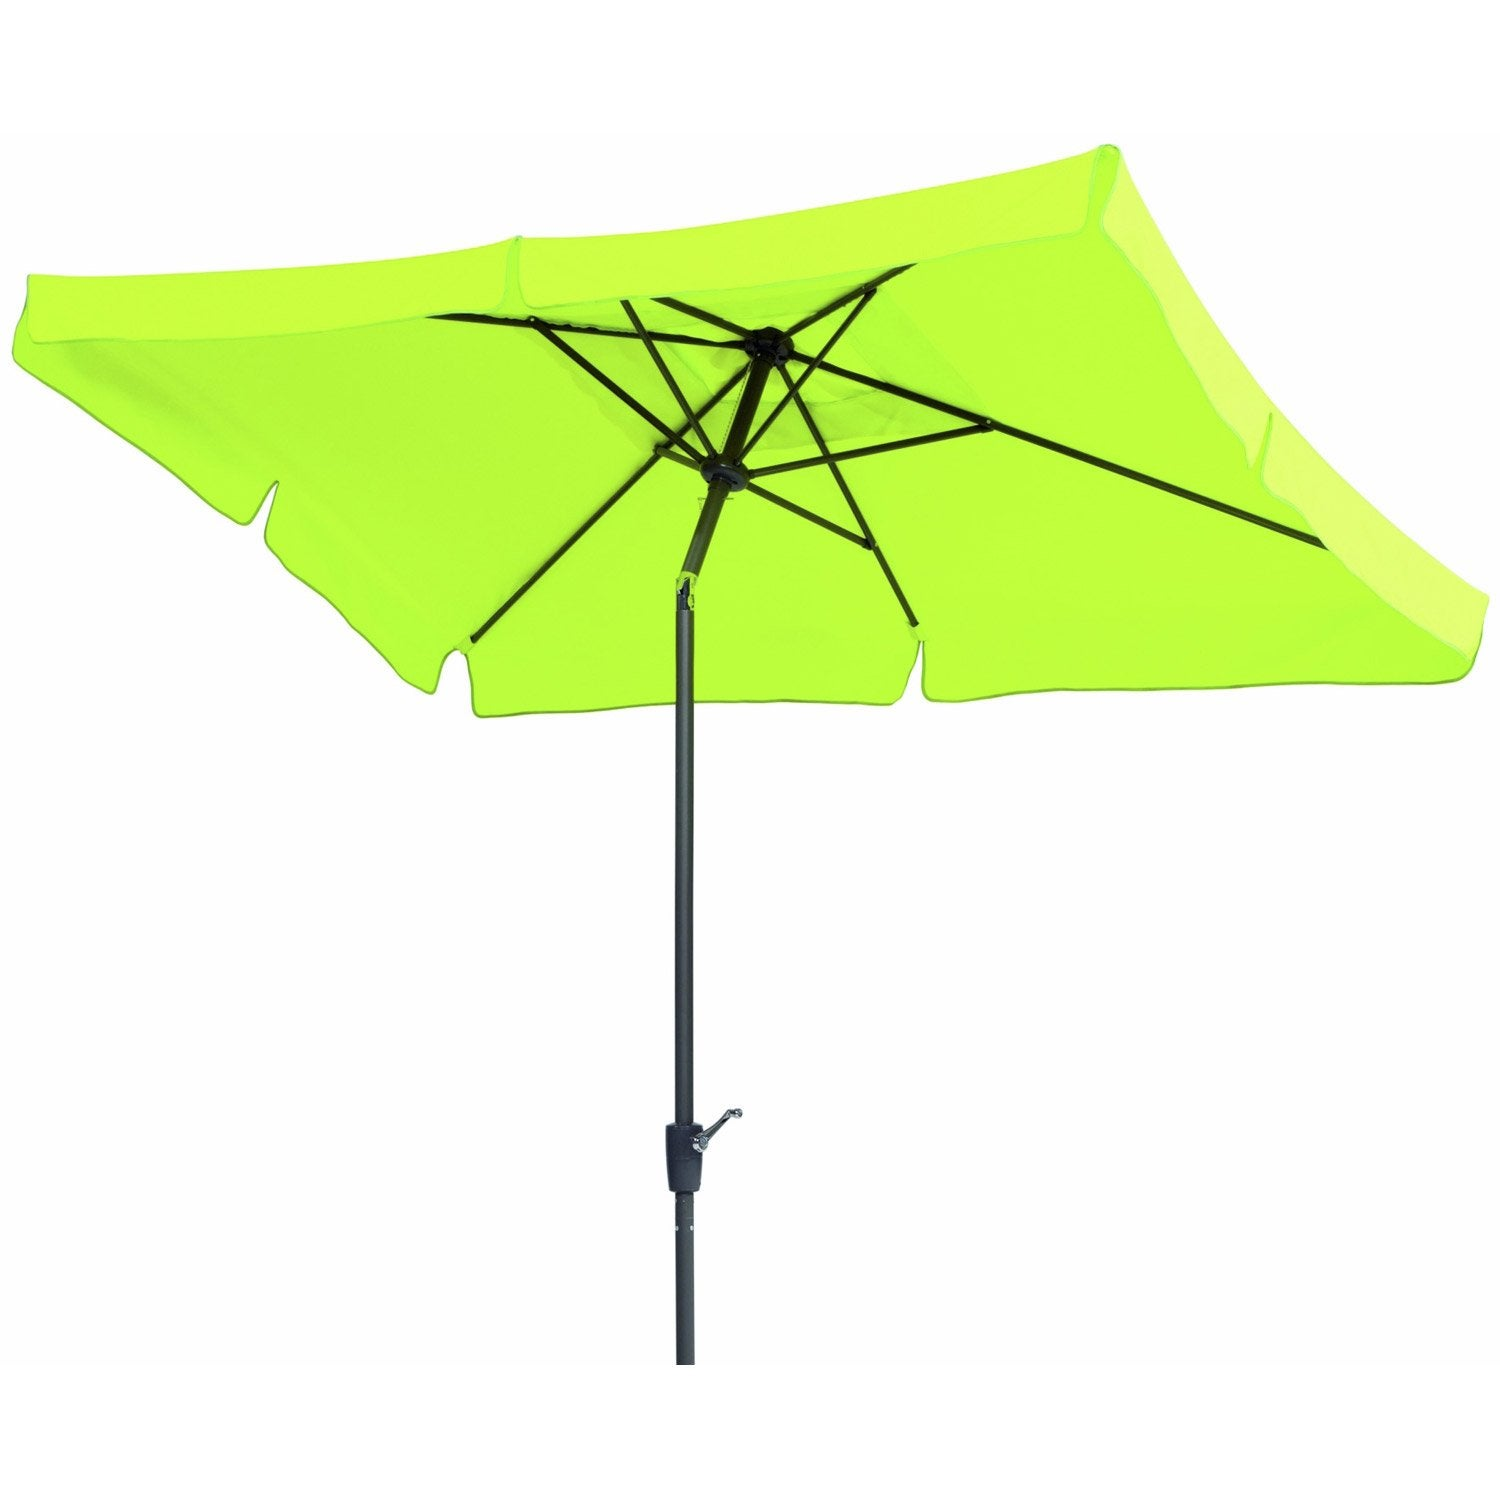 Parasol droit new york vert pomme rectangulaire x l - Parasol deporte inclinable leroy merlin ...